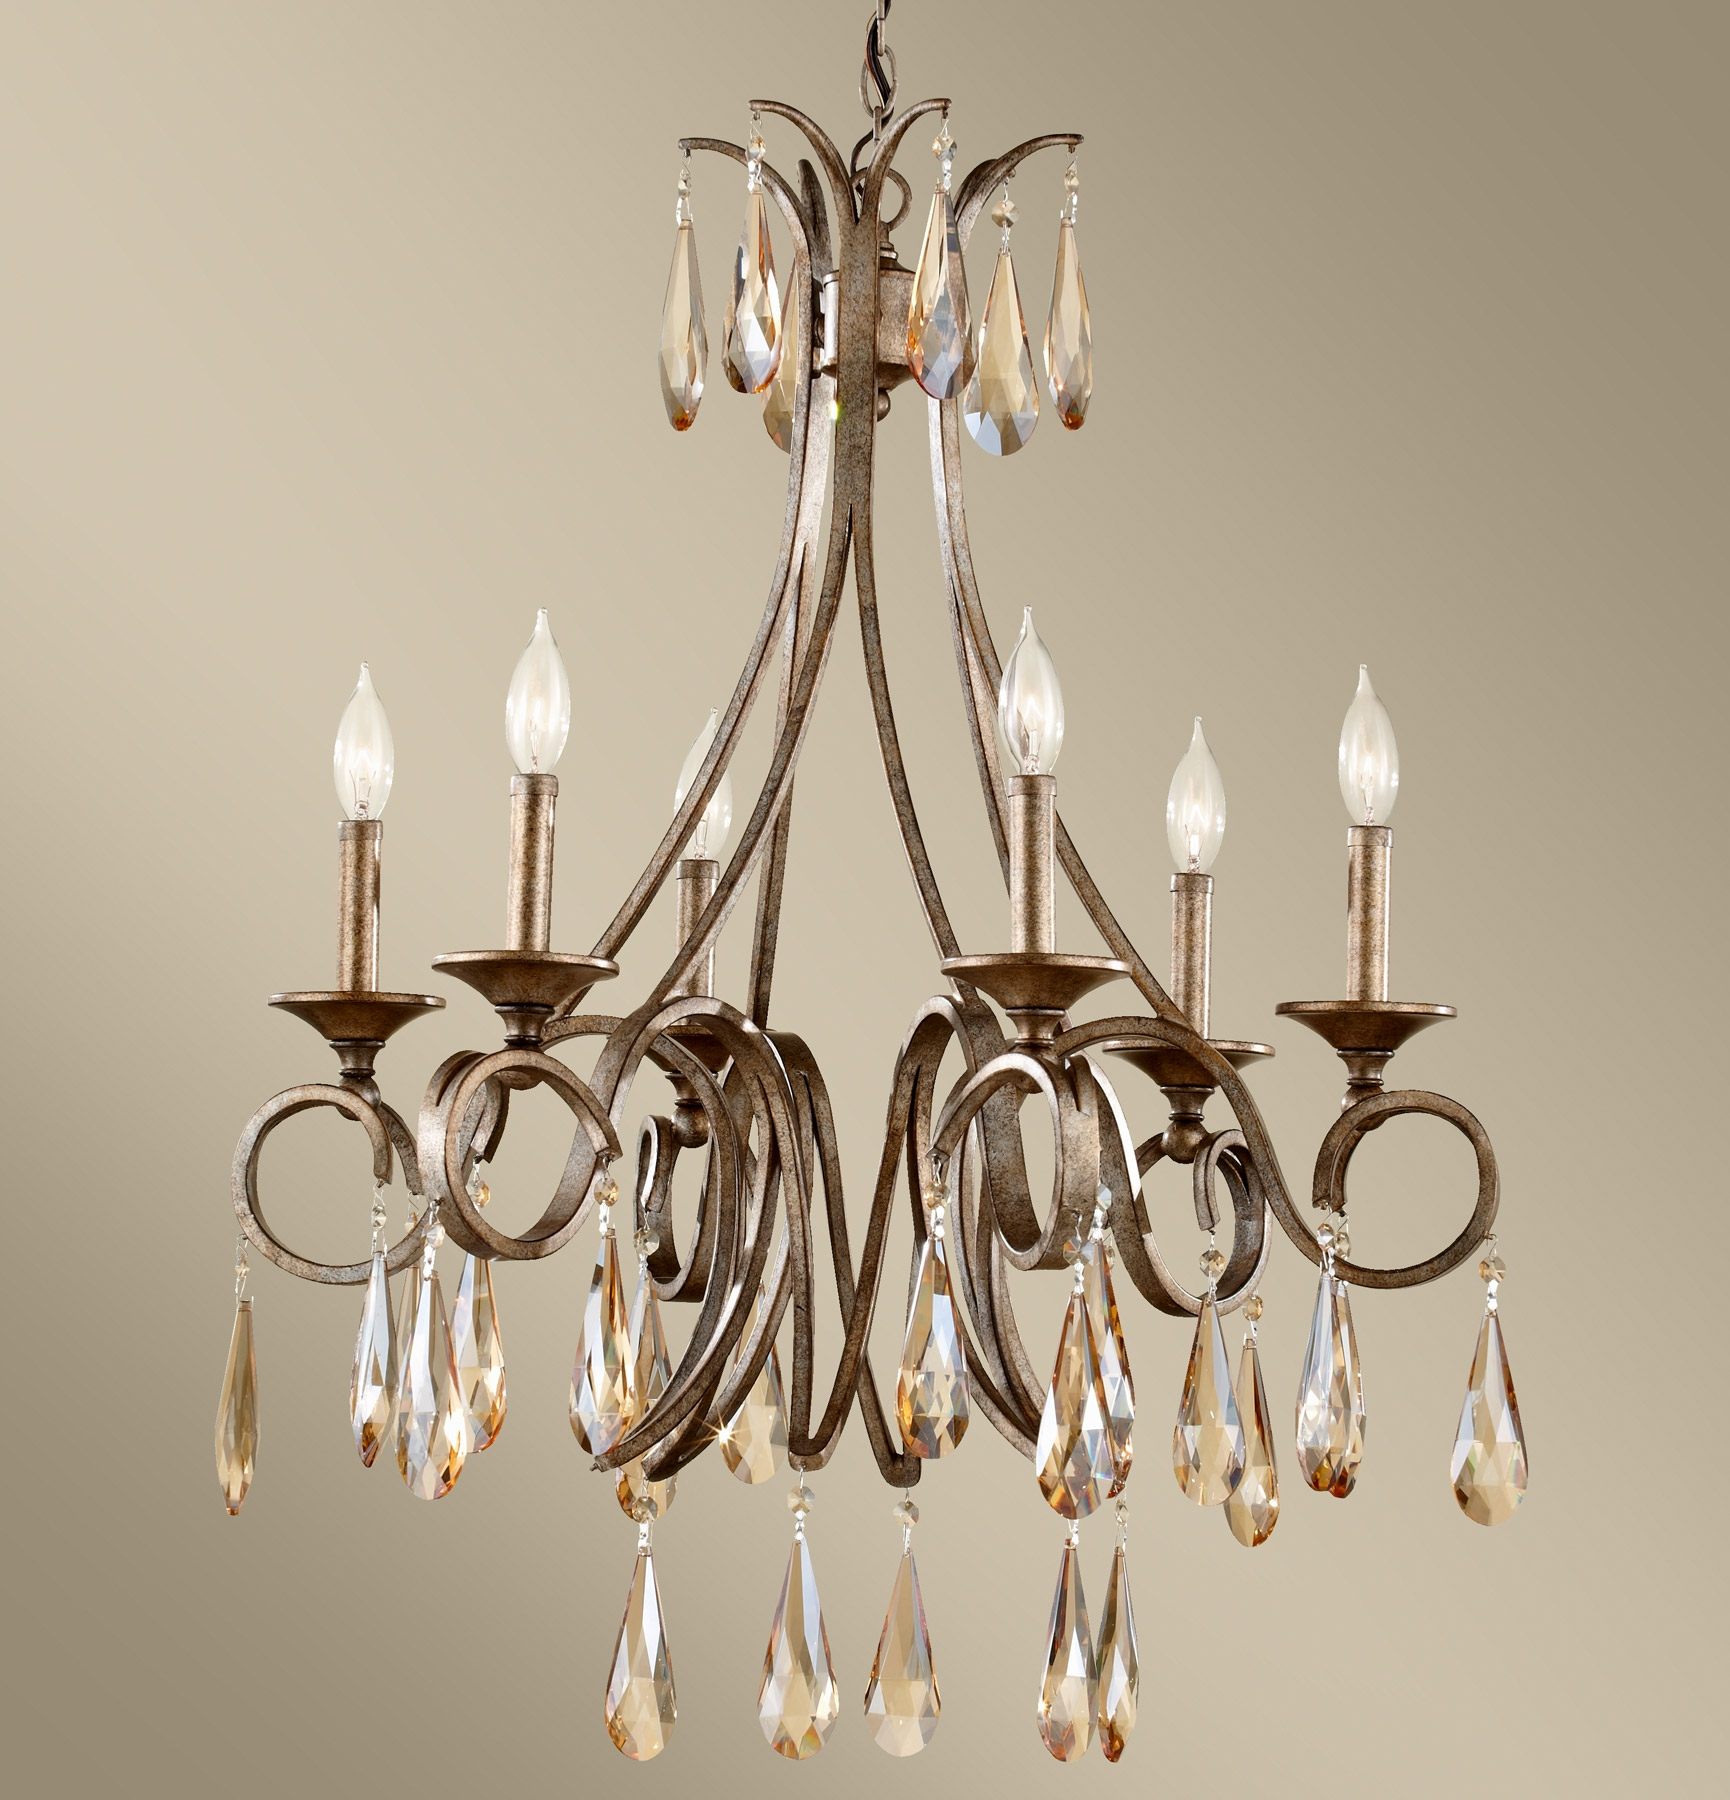 Lighting Elegant Feiss Lighting For Awesome Home Lighting Idea With Regard To Feiss Chandeliers (Image 11 of 25)